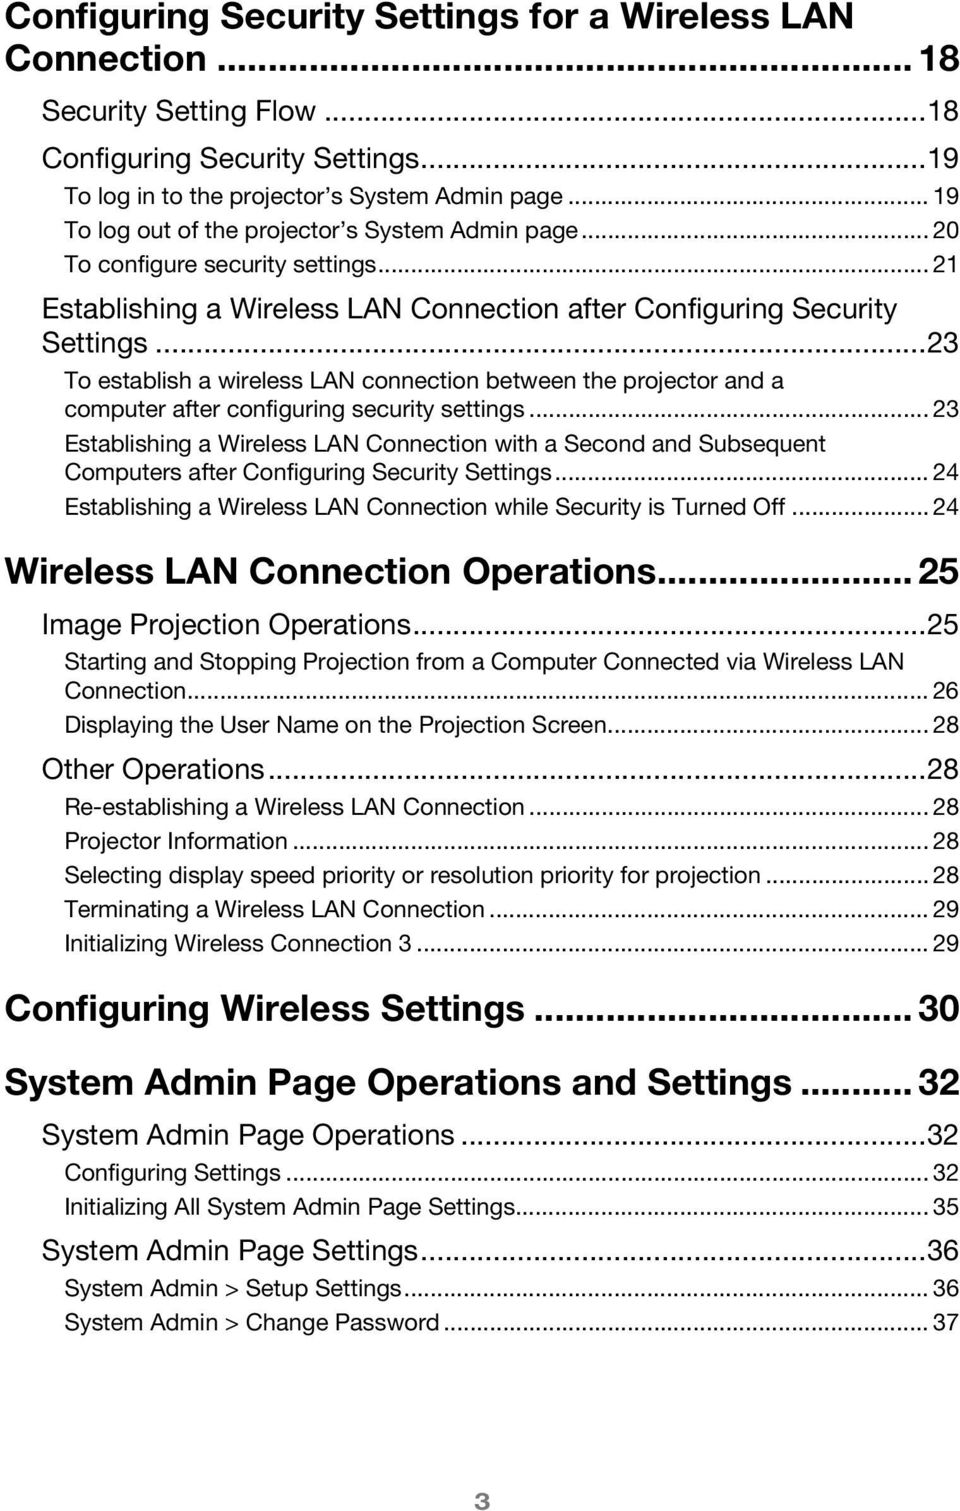 ..23 To establish a wireless LAN connection between the projector and a computer after configuring security settings.